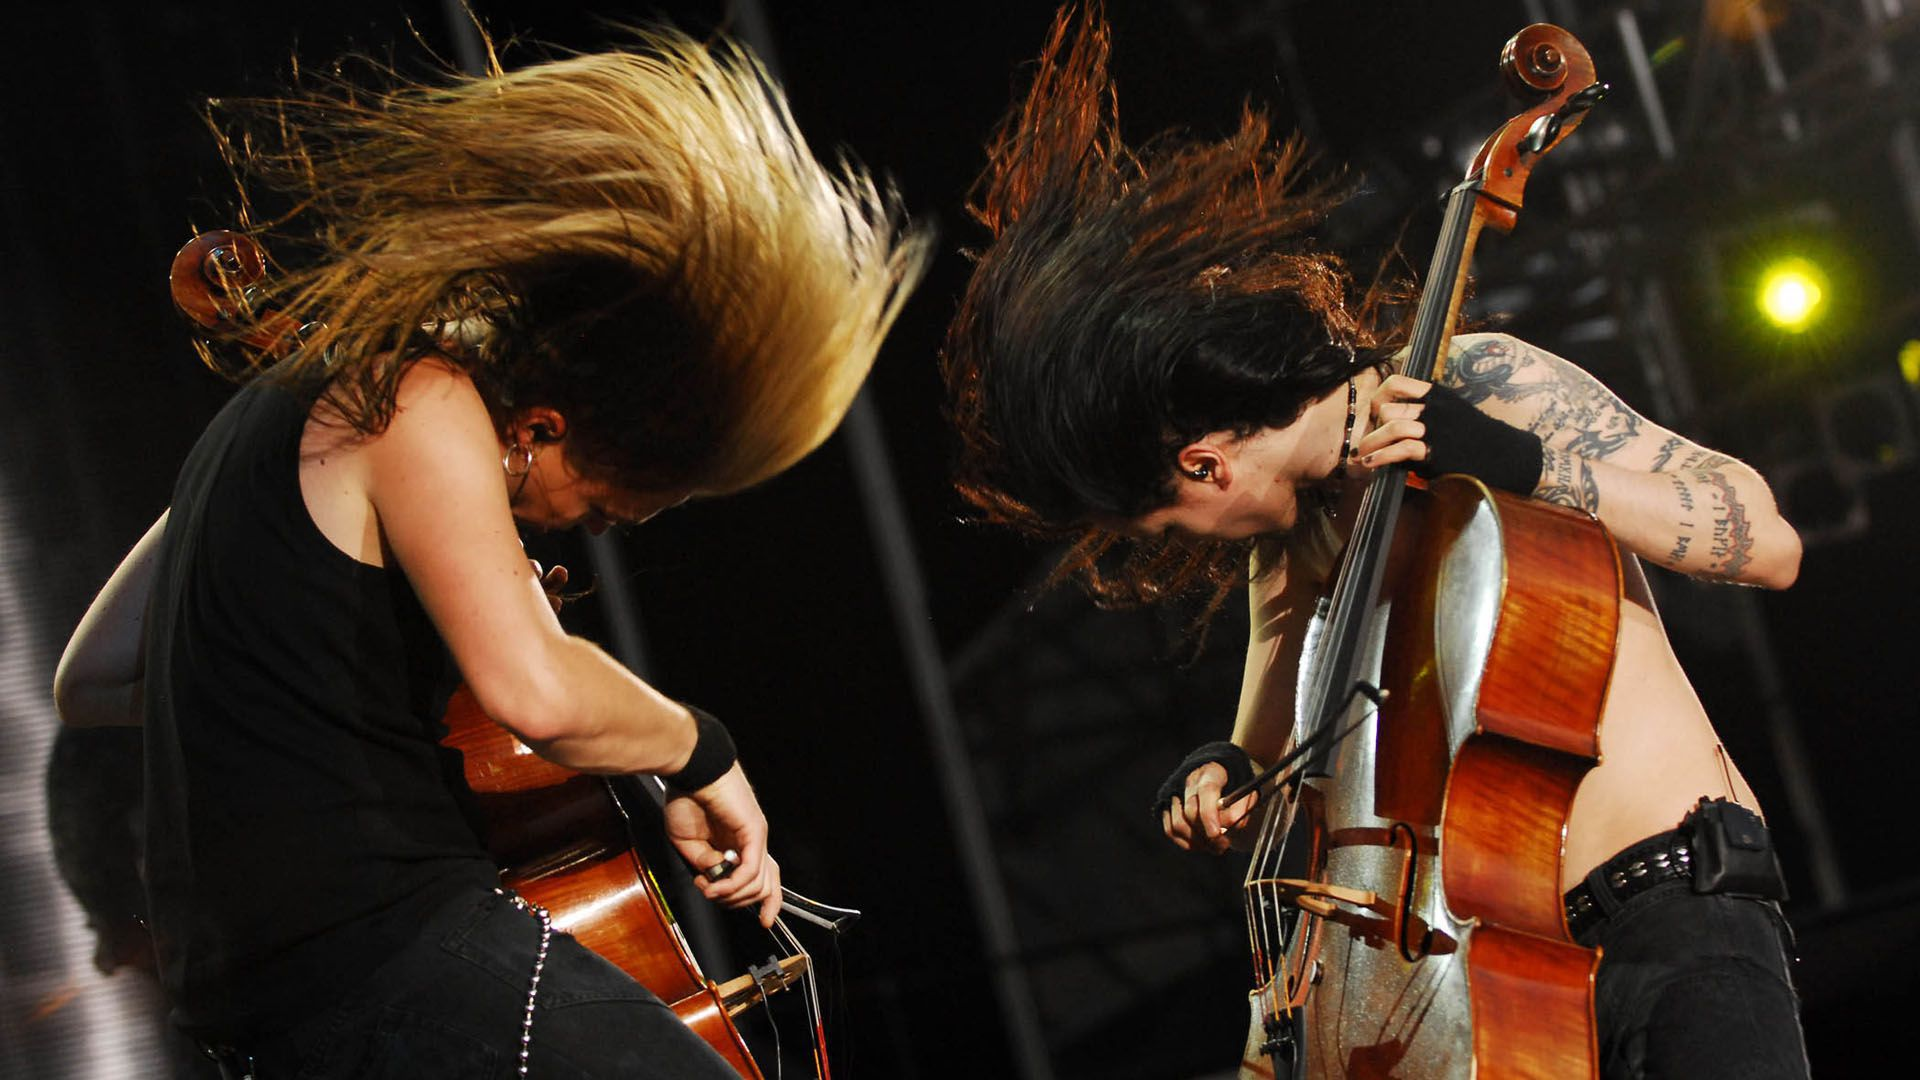 Apocalyptica Beautiful